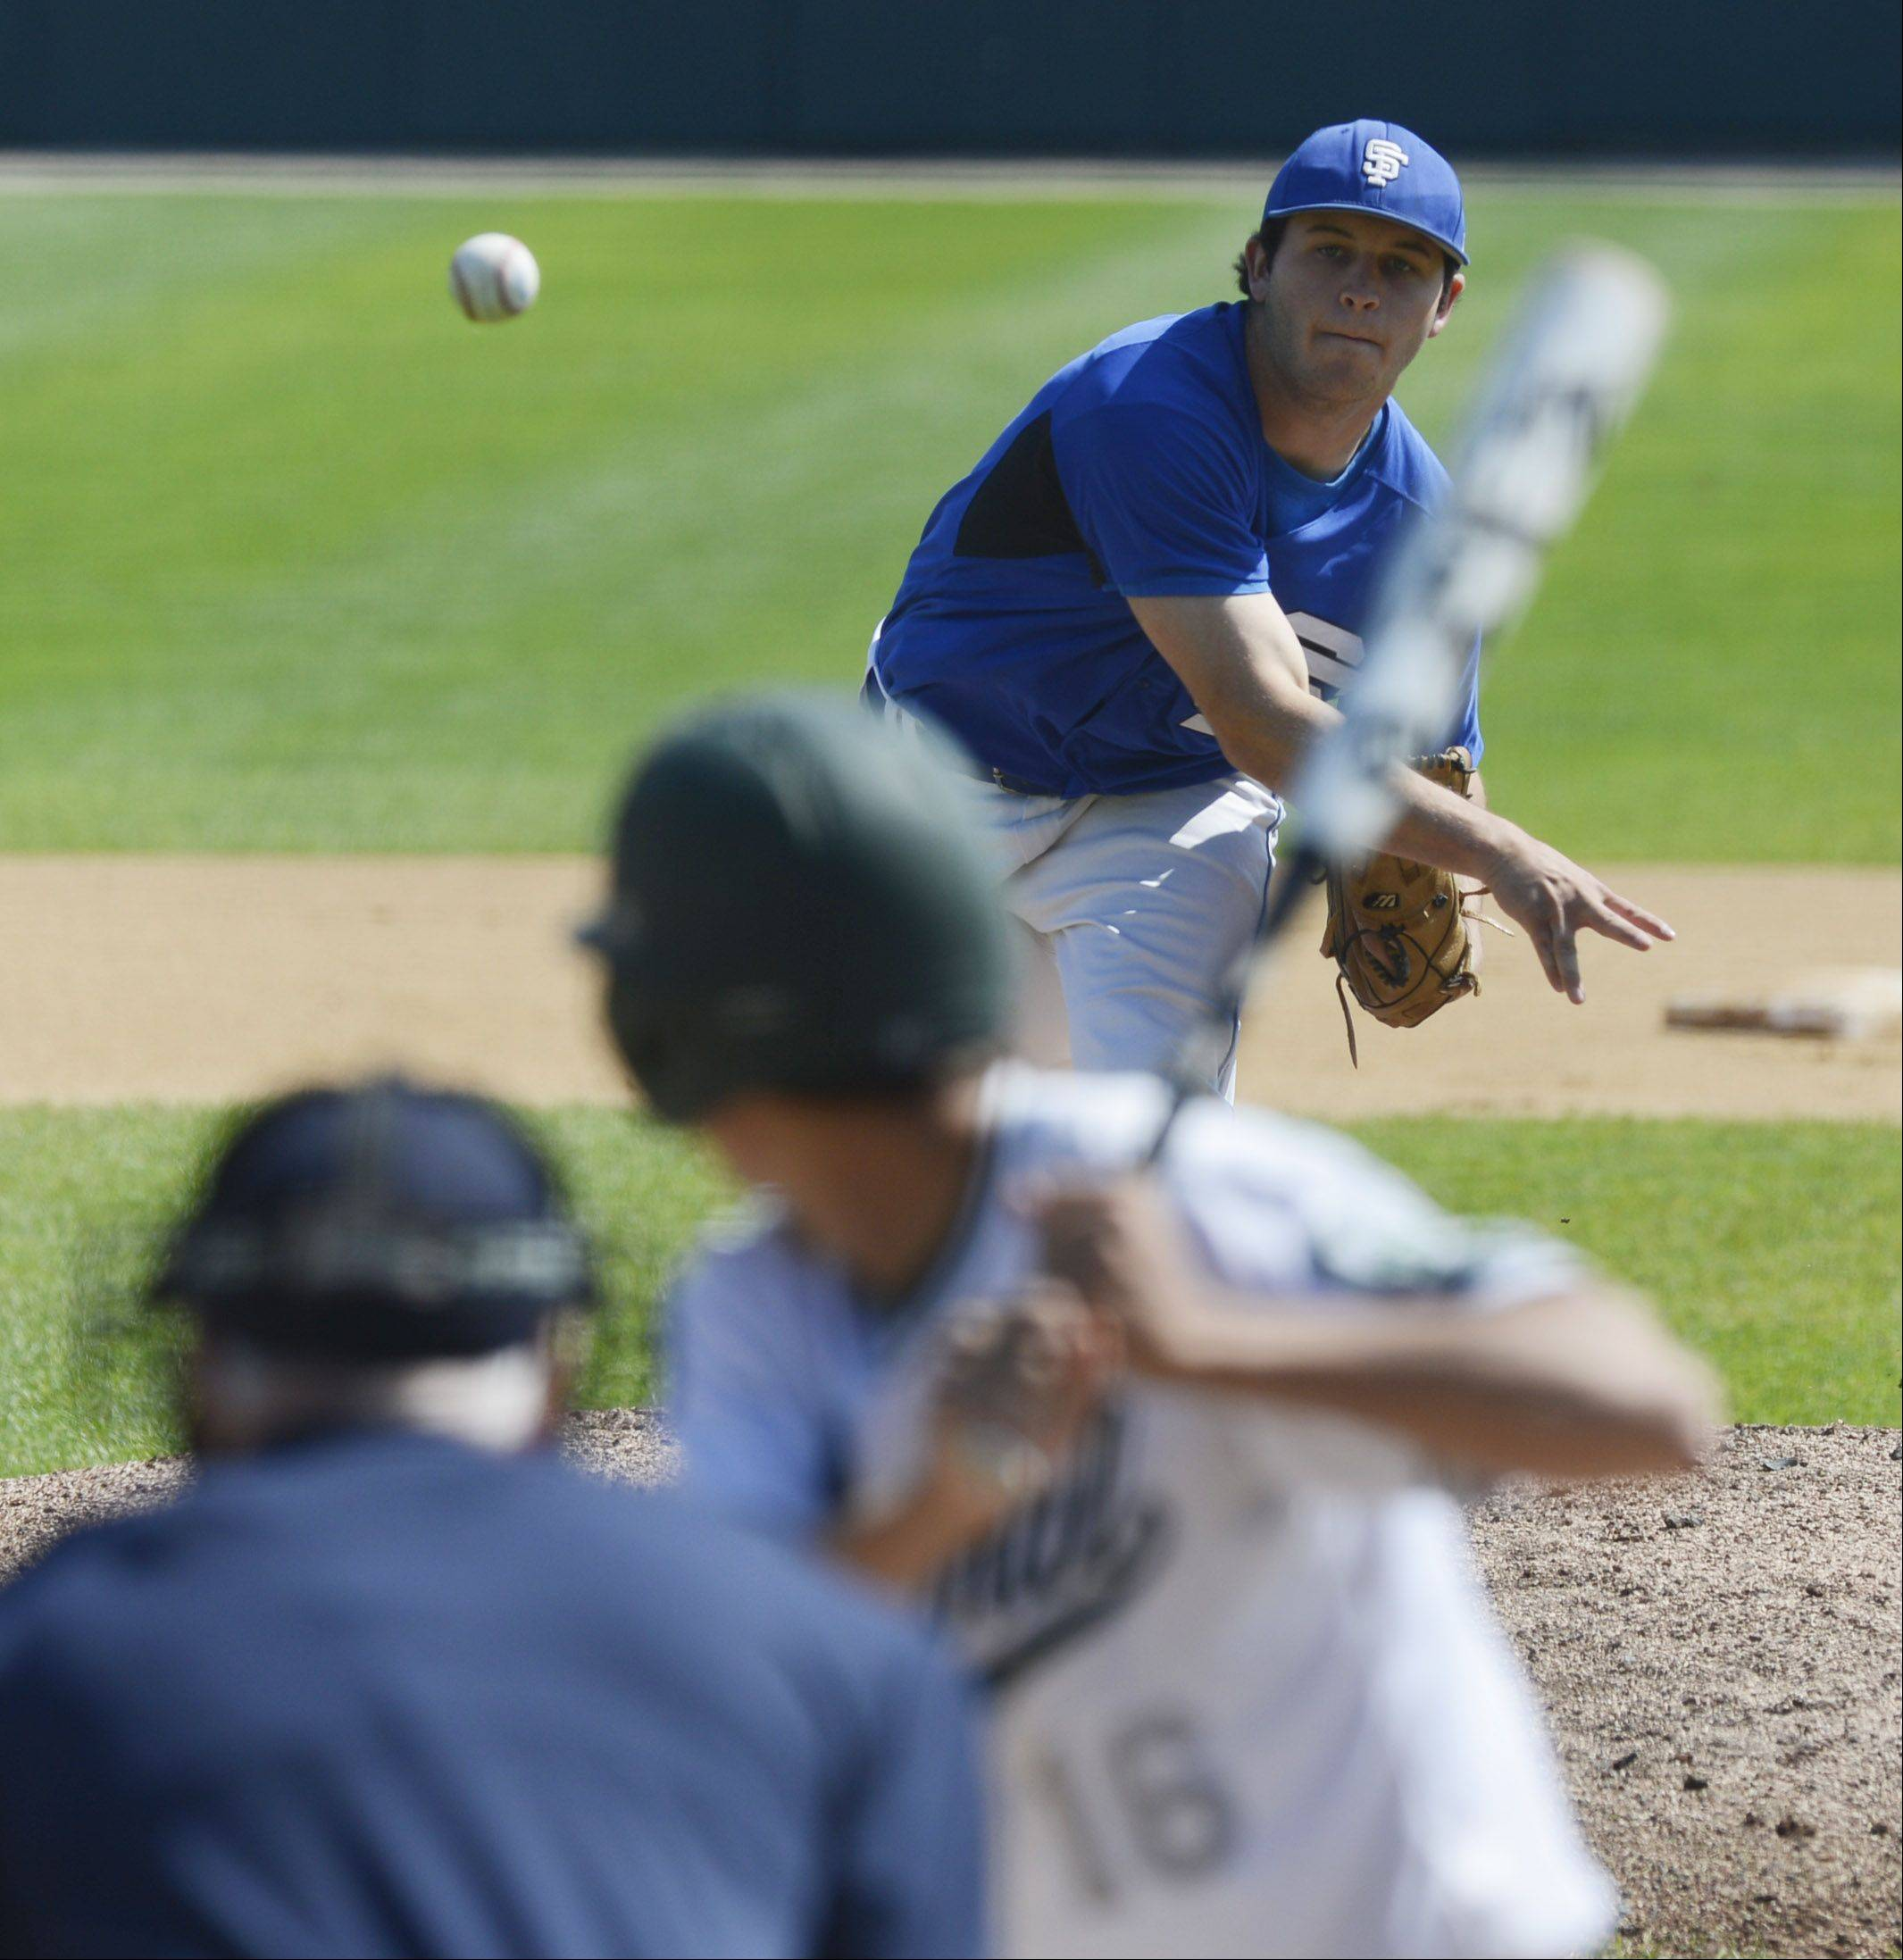 Jack Petrando of St. Francis delivers against Grayslake Central during the Class 3A state baseball semifinal at Silver Cross Field in Joliet on Friday.